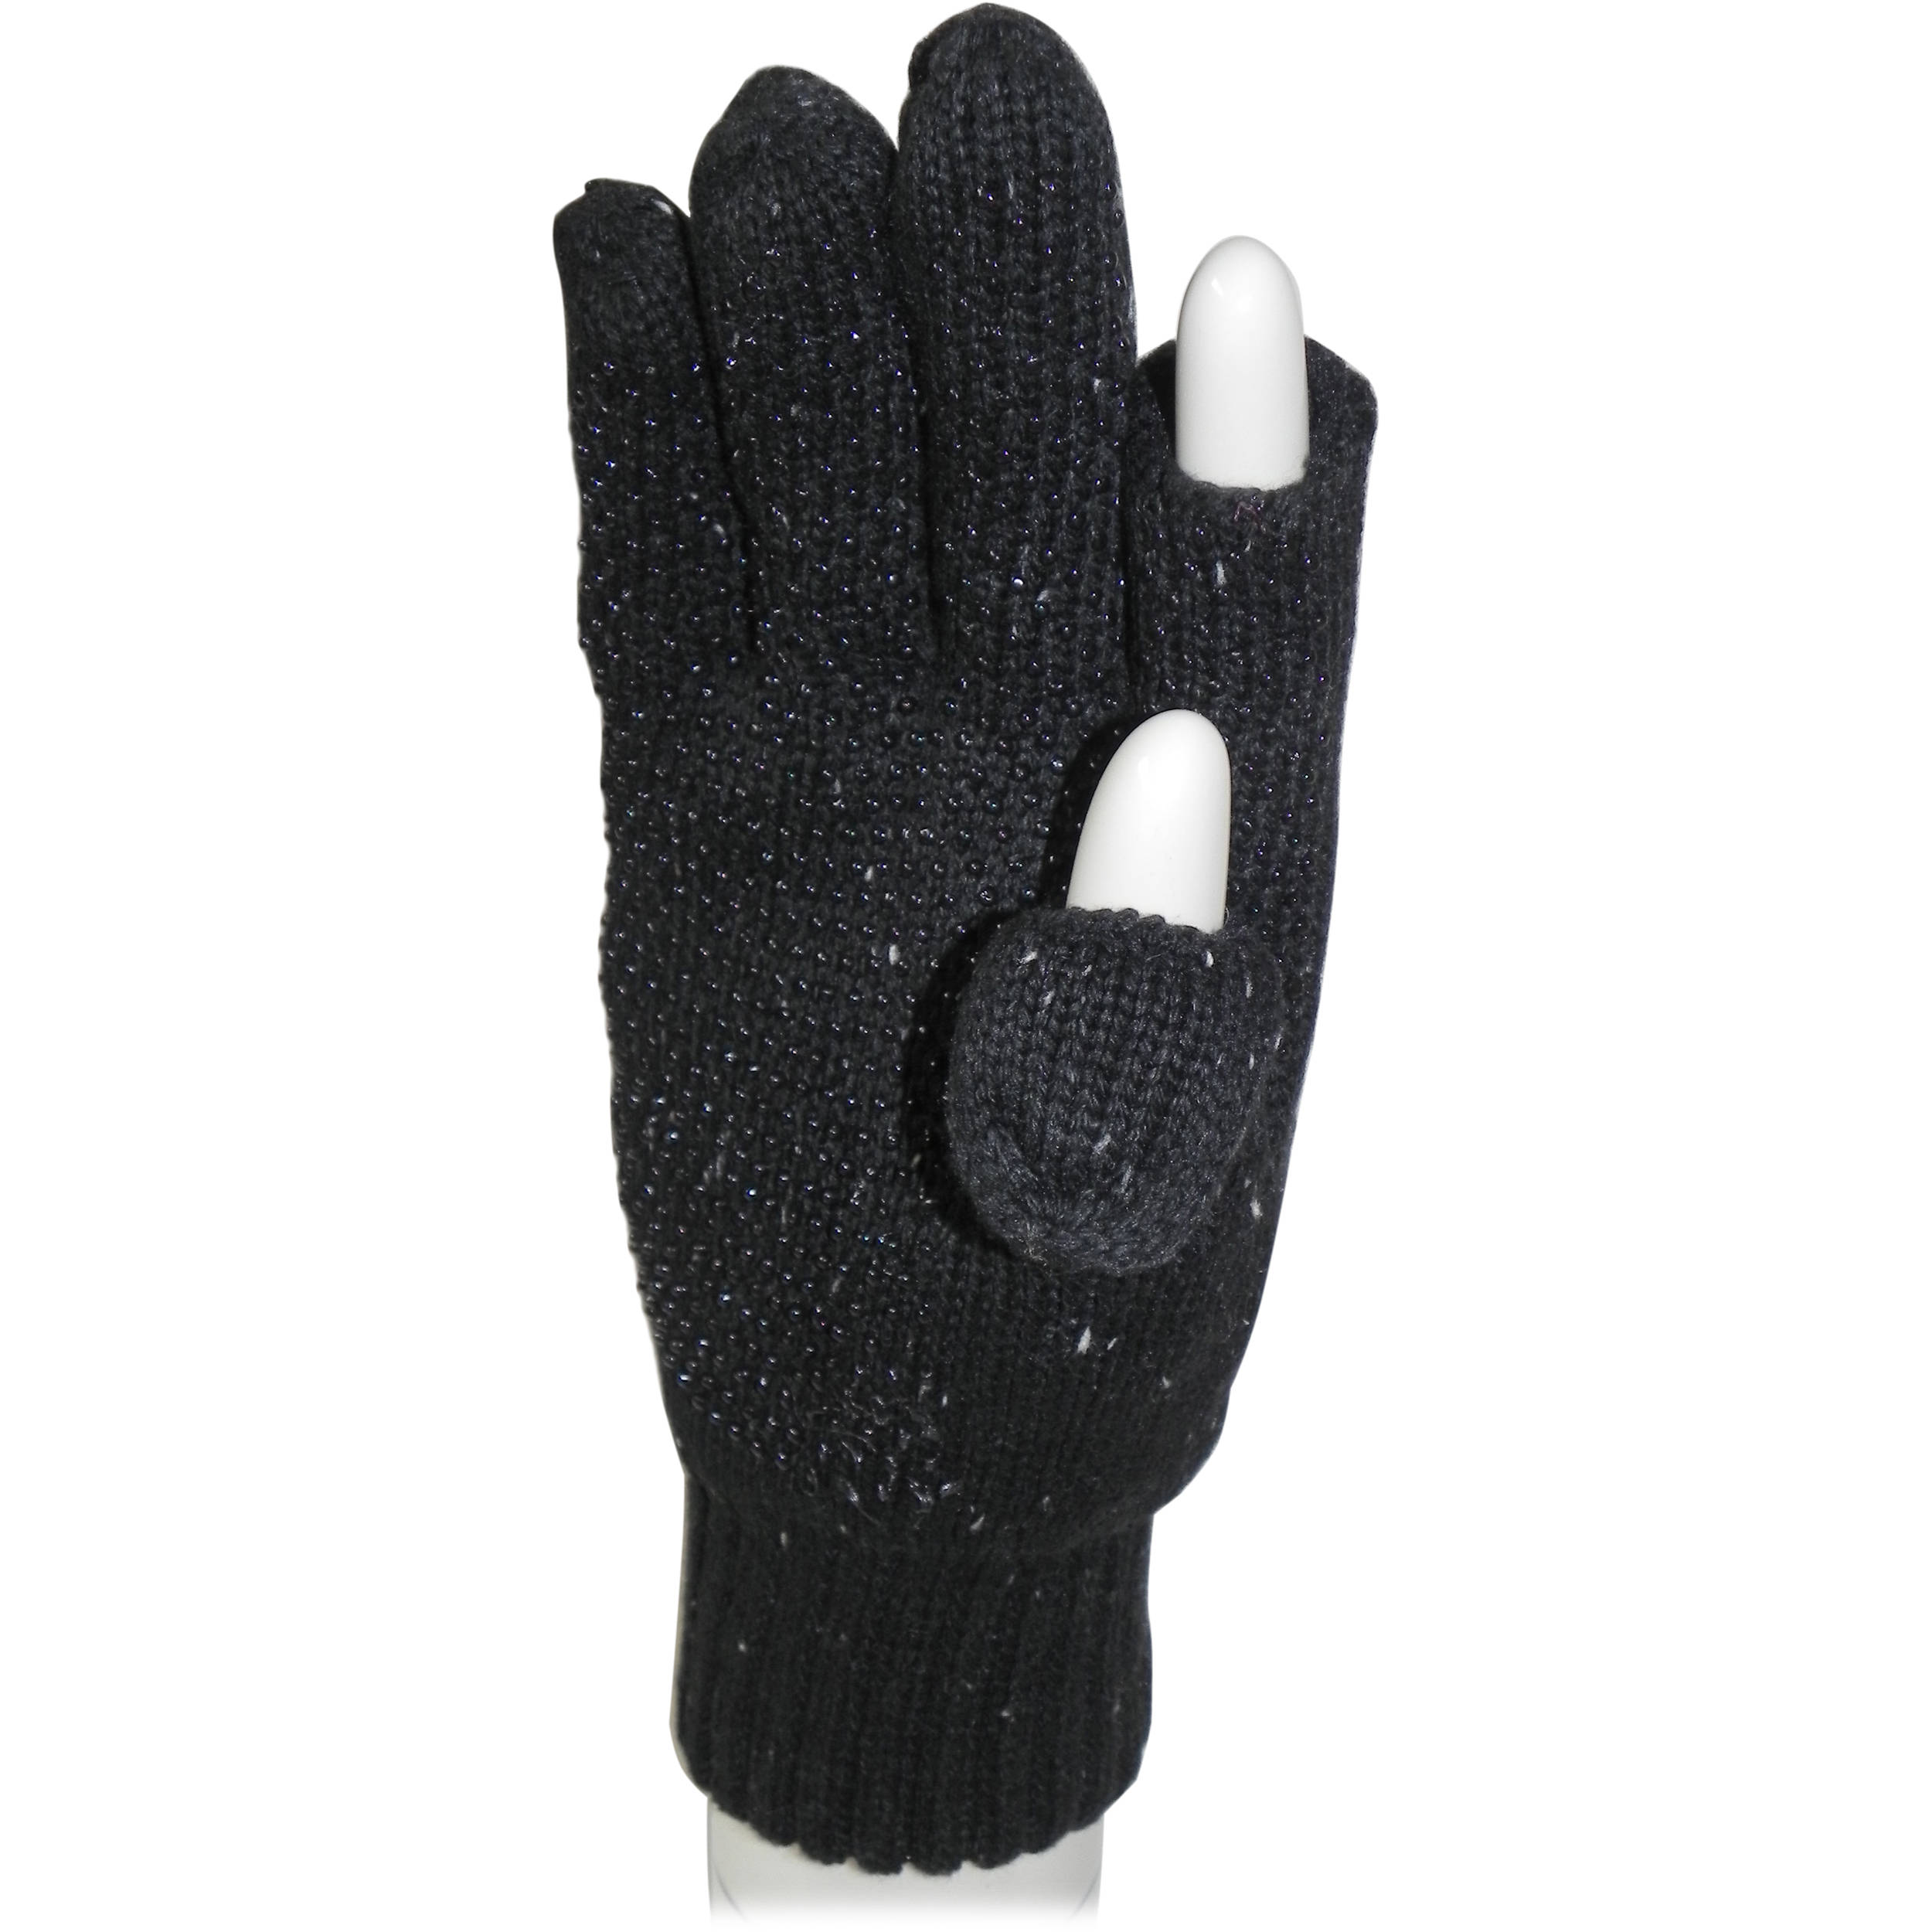 Freehands Men S Insulated Knit Gloves S M 5118ms B Amp H Photo